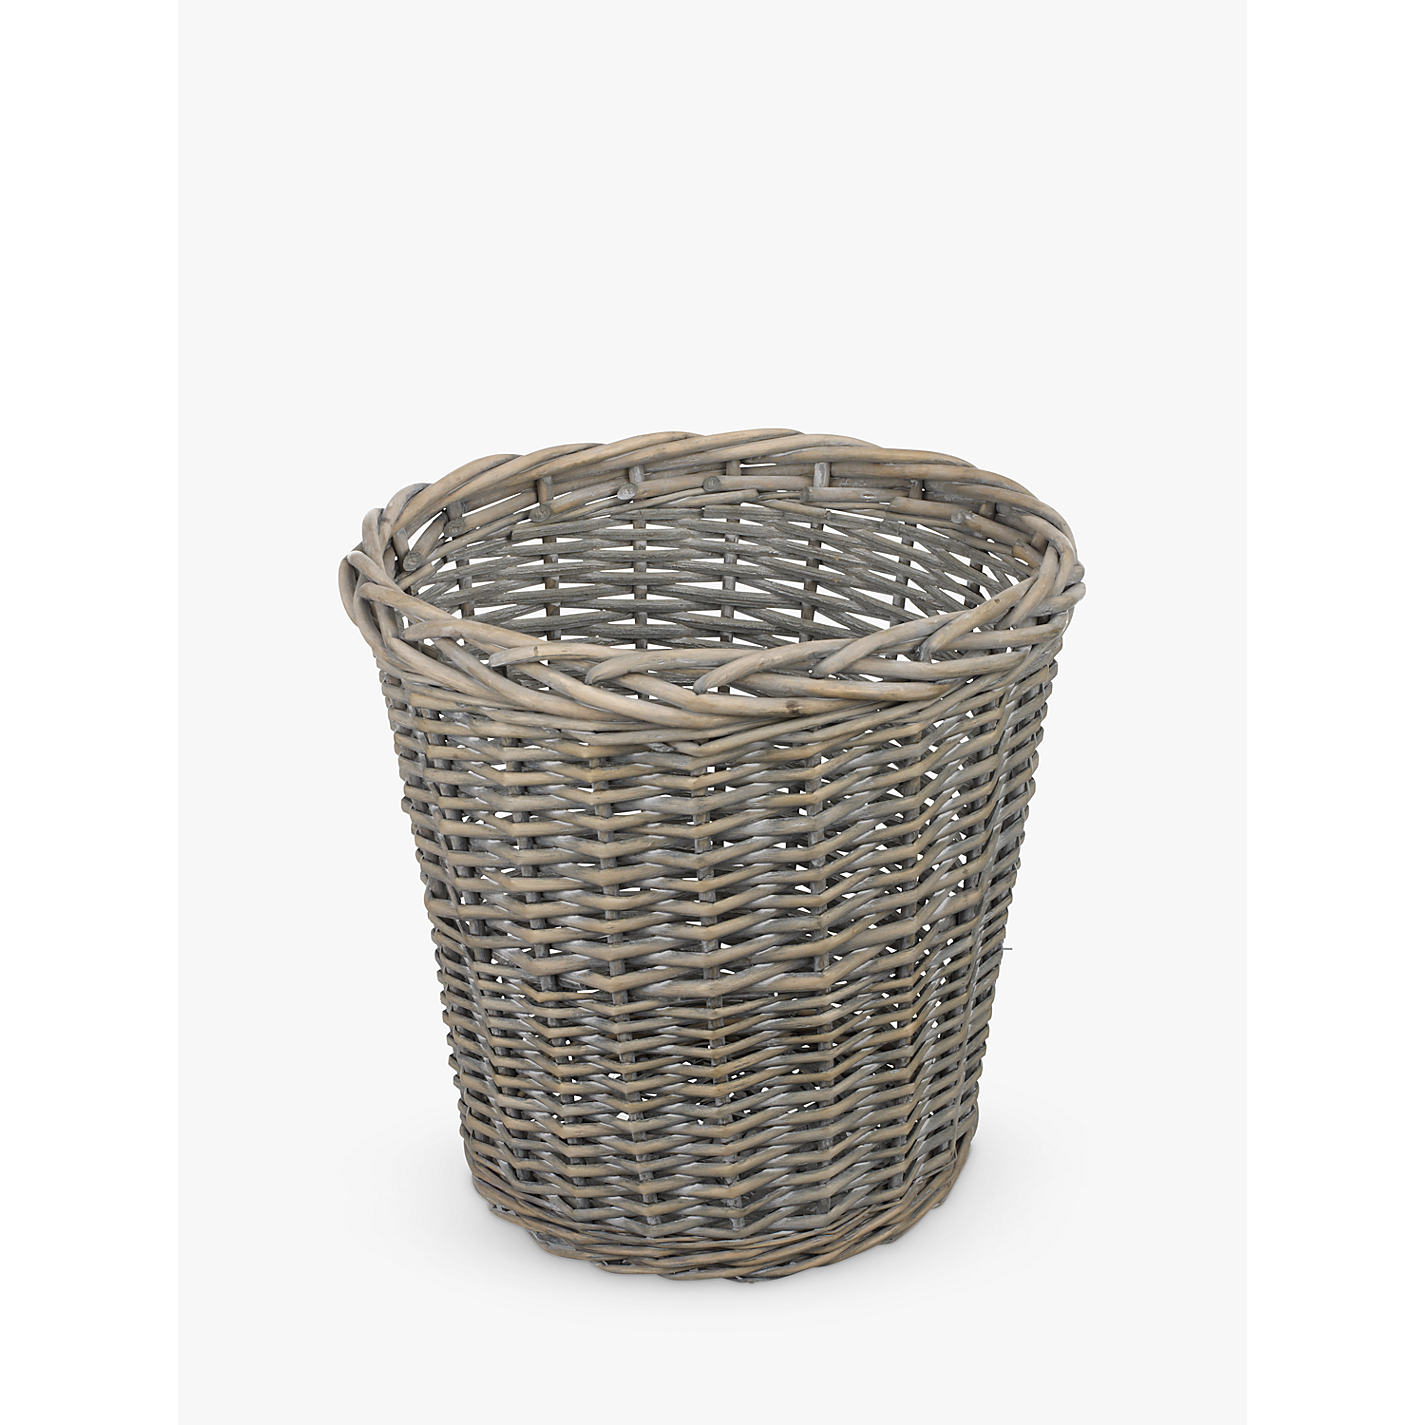 Wastepaper Basket Unique Buy John Lewis Wicker Wastepaper Bin Grey Wash  John Lewis 2017